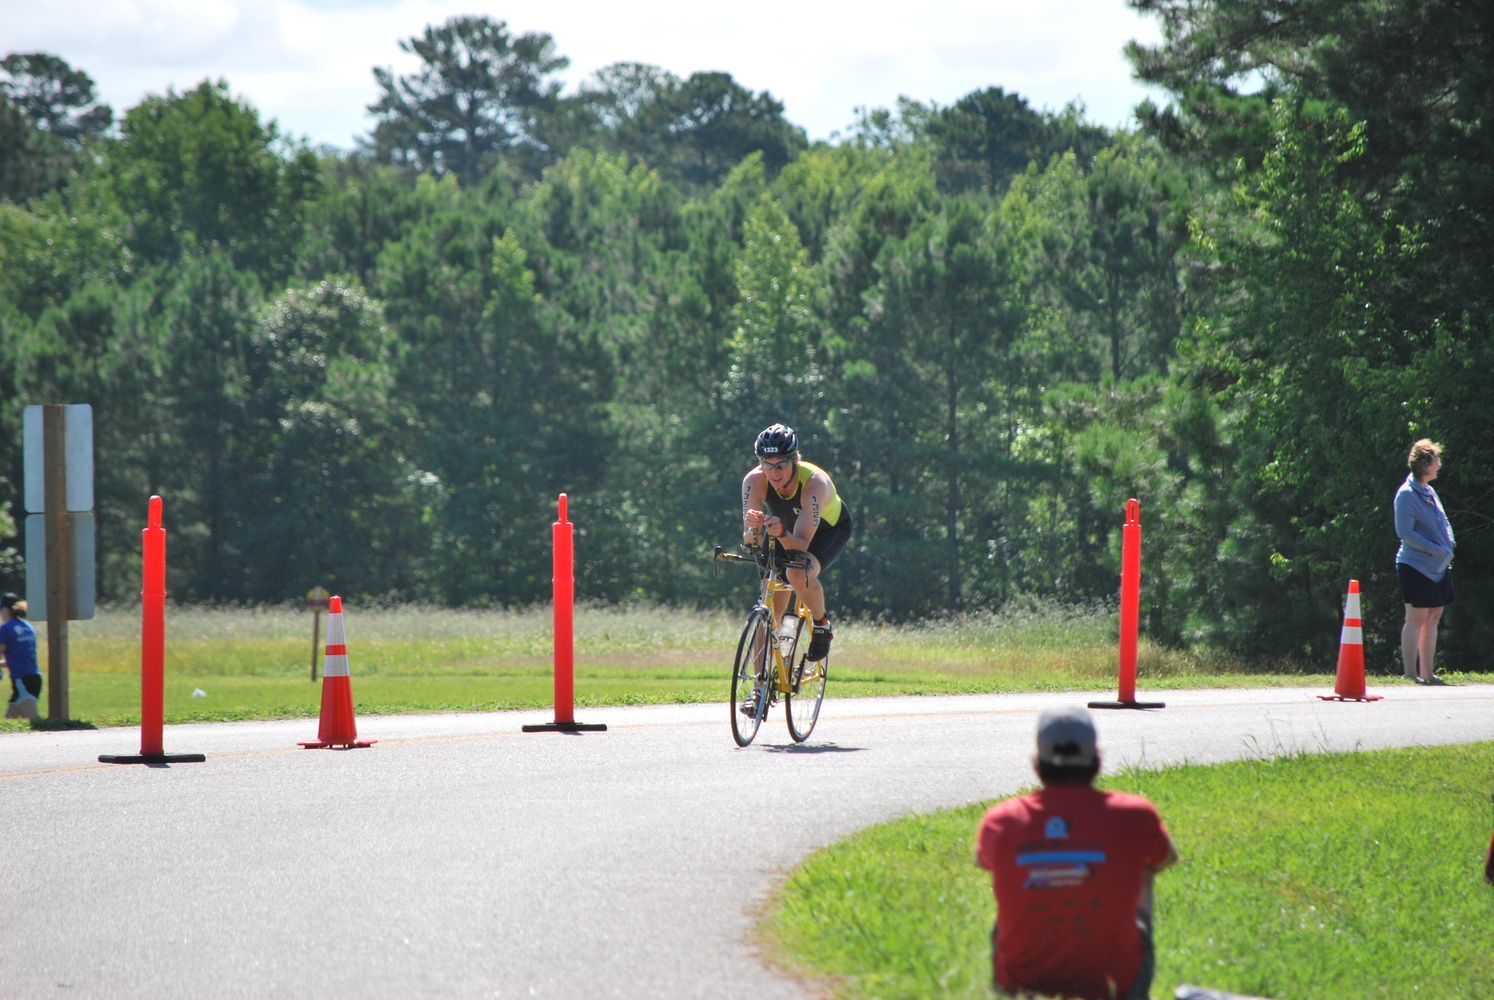 Williamsburg Triathlon - Bicycling by Benny Mouton